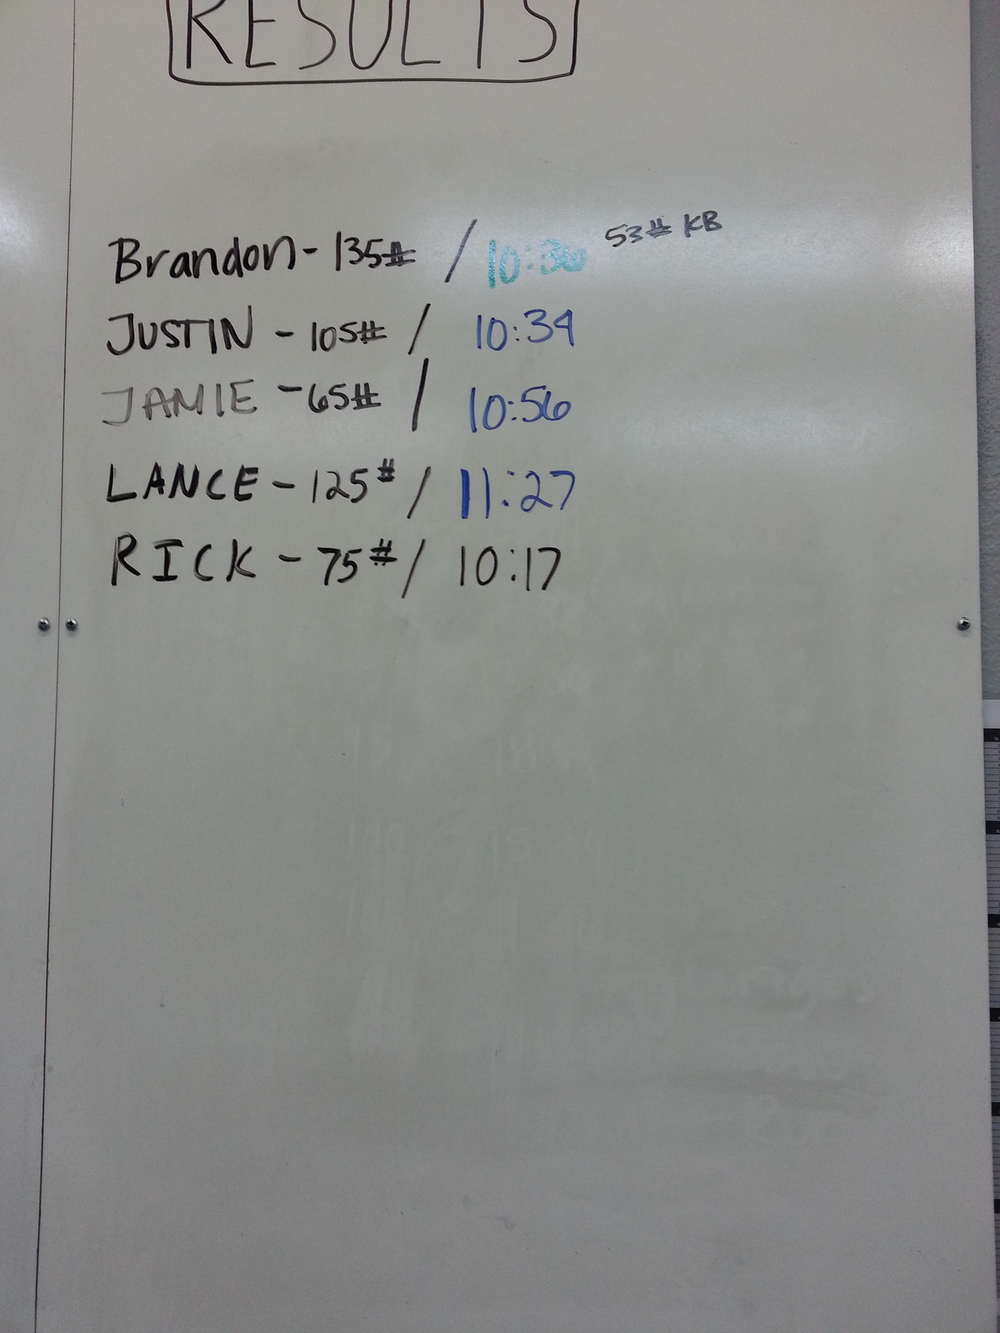 Results from 7/3 WOD